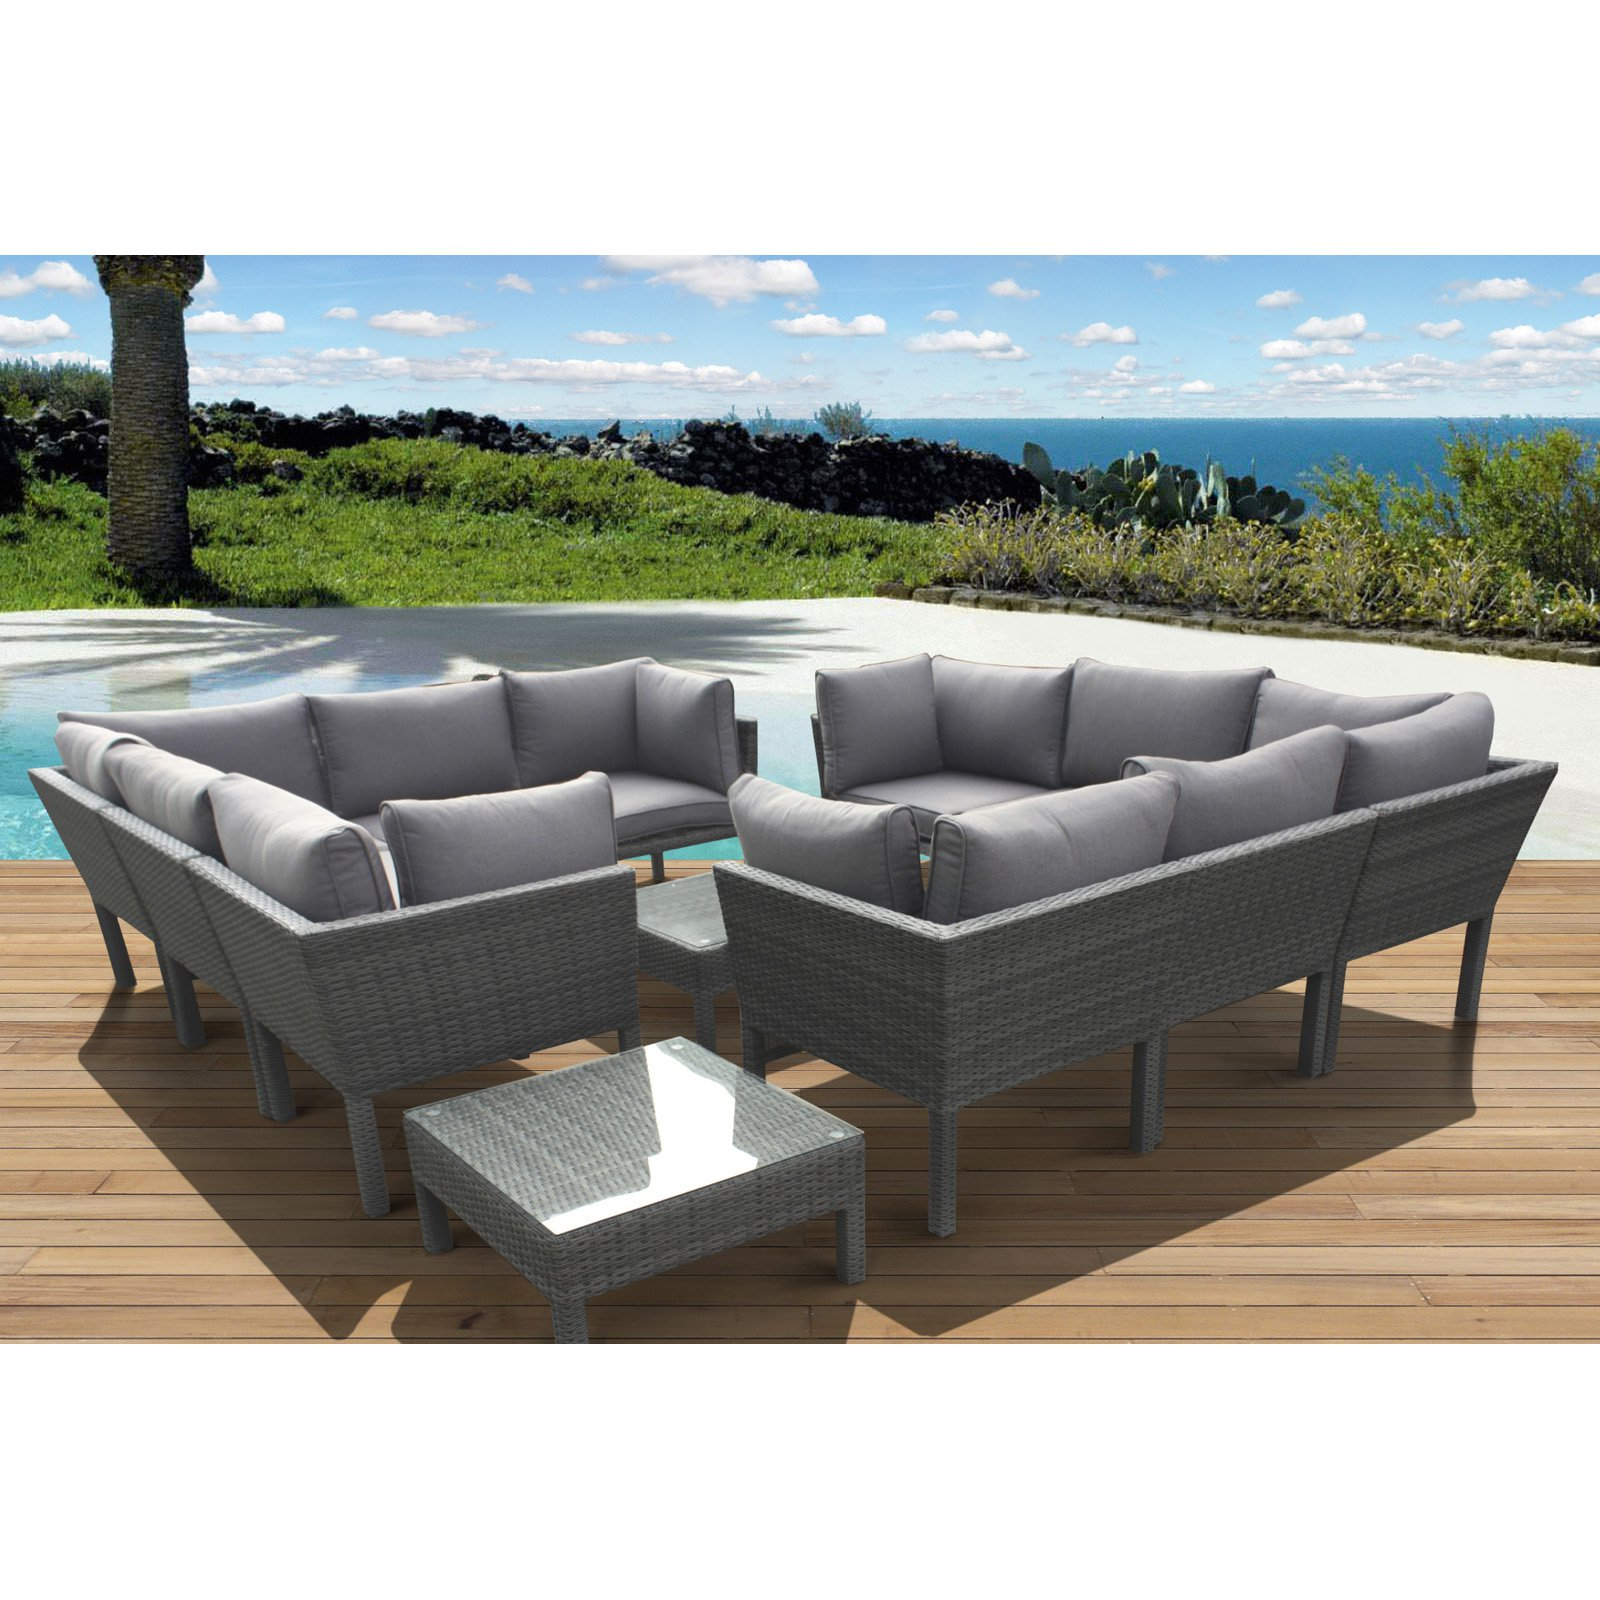 Atlantic St. James All-Weather Wicker Sectional Set - Seats 10